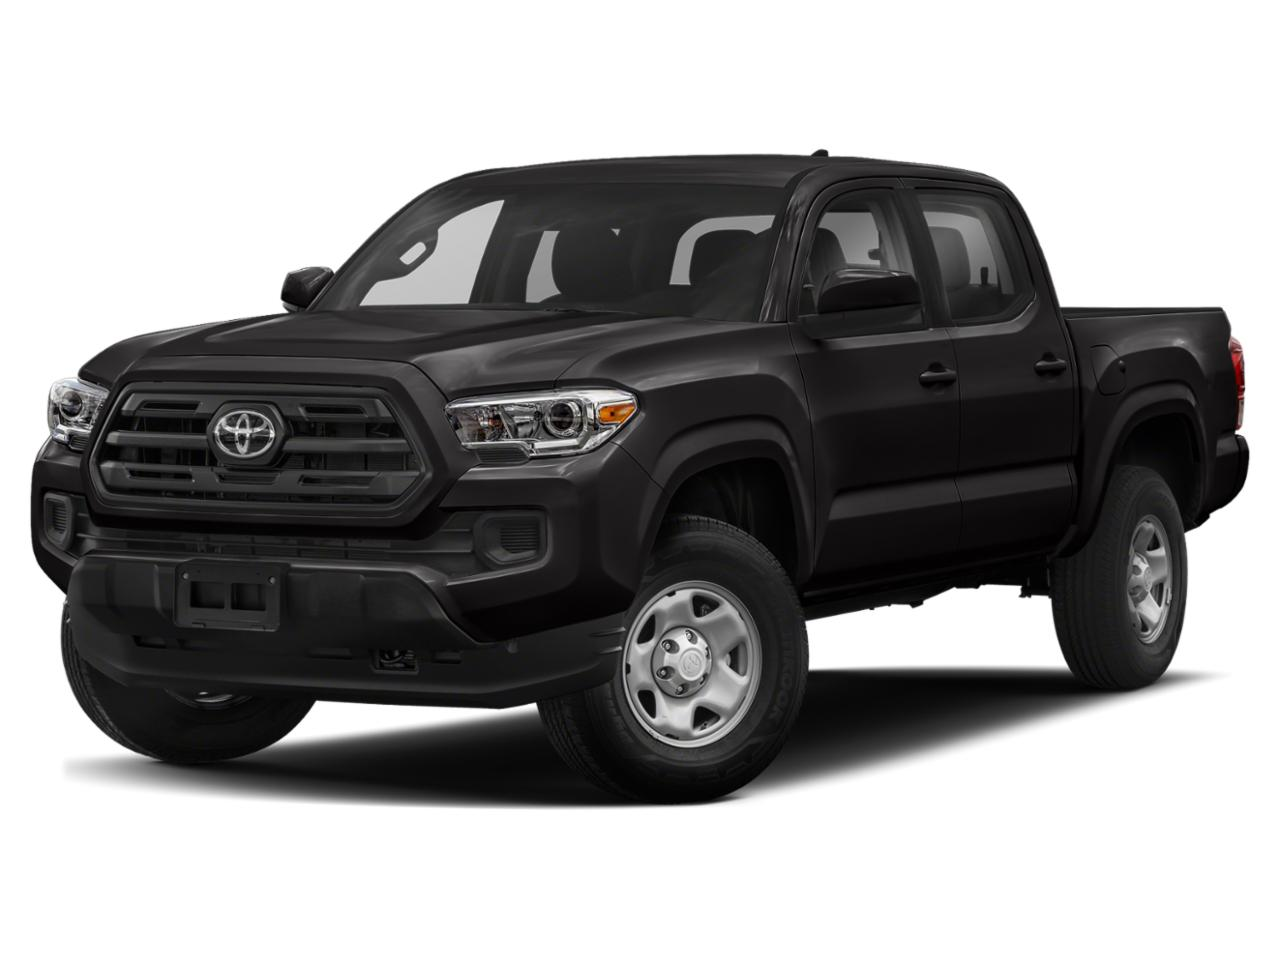 2019 Toyota Tacoma 2WD Vehicle Photo in Fort Worth, TX 76116